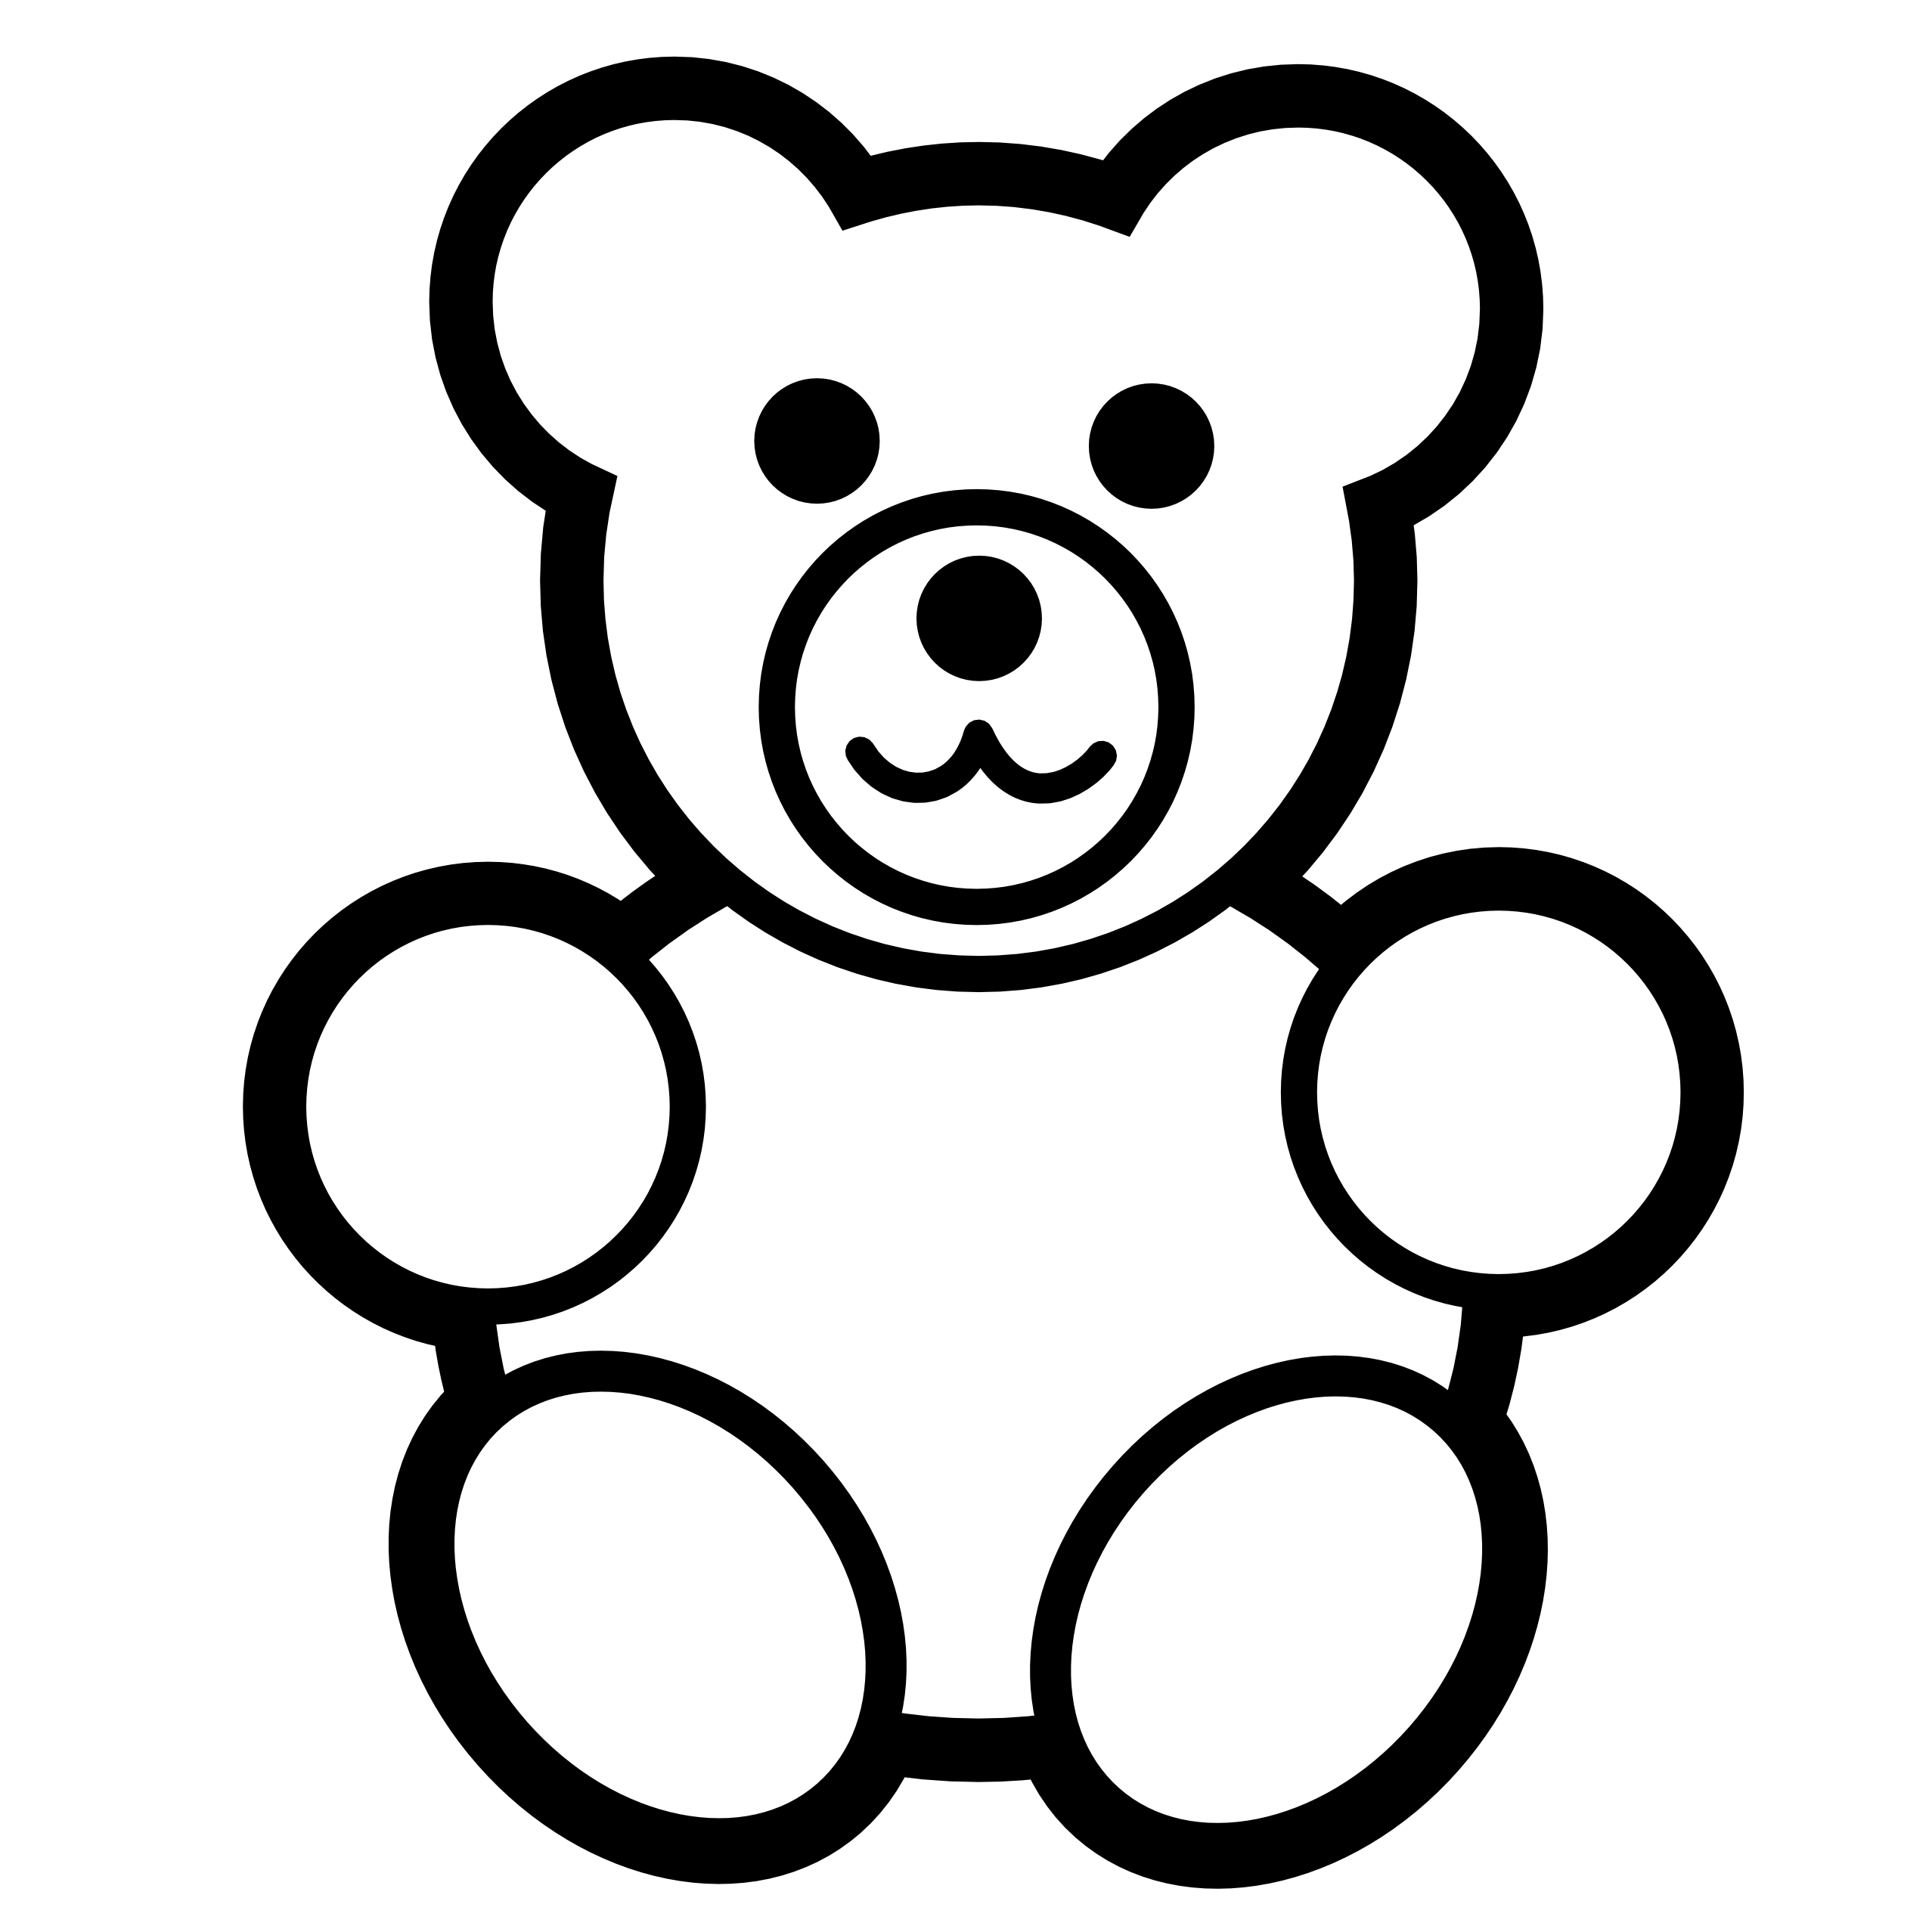 Teddy bear silhouette png. Stencil idea for baby